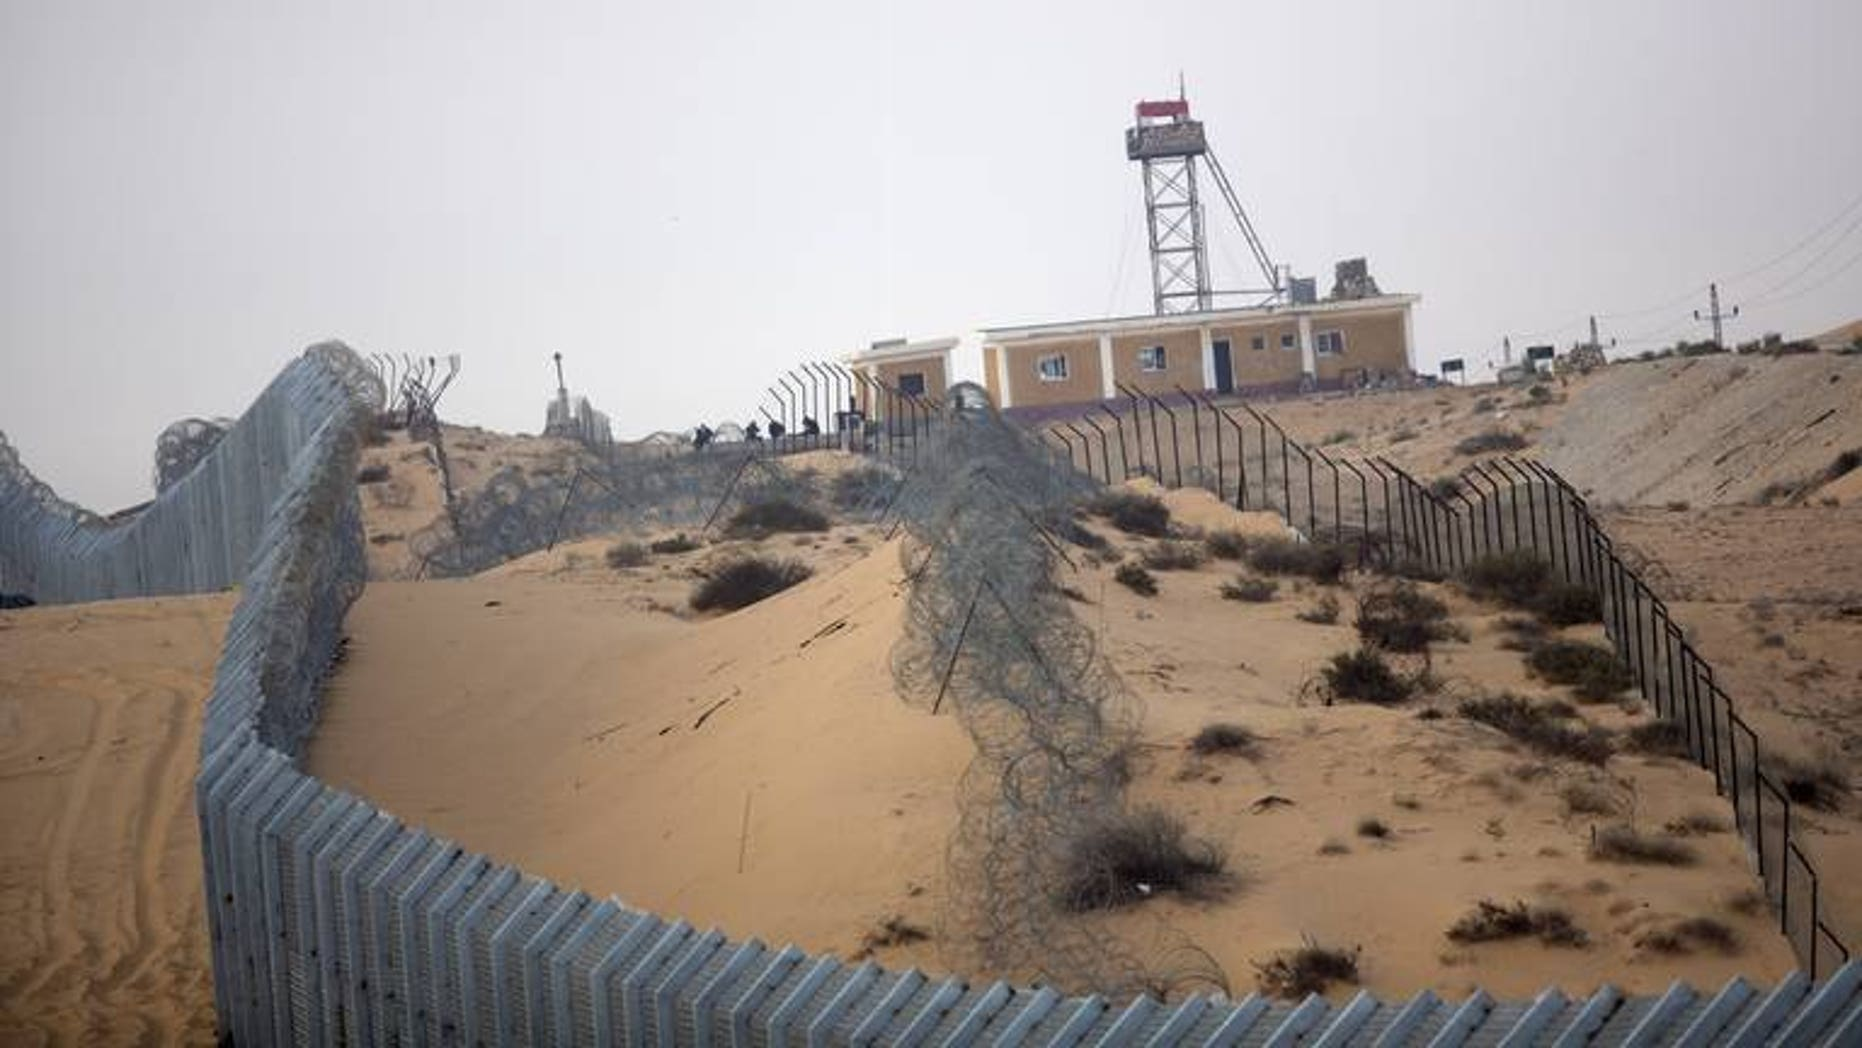 The Israeli built fence along the border with Egypt near the village of Nitzanei Sinai is shown September 6, 2012. Israel has given Egypt the go-ahead to deploy two battalions to the Sinai to tackle militants in the sensitive region where deployments are restricted by treaty, army radio reports